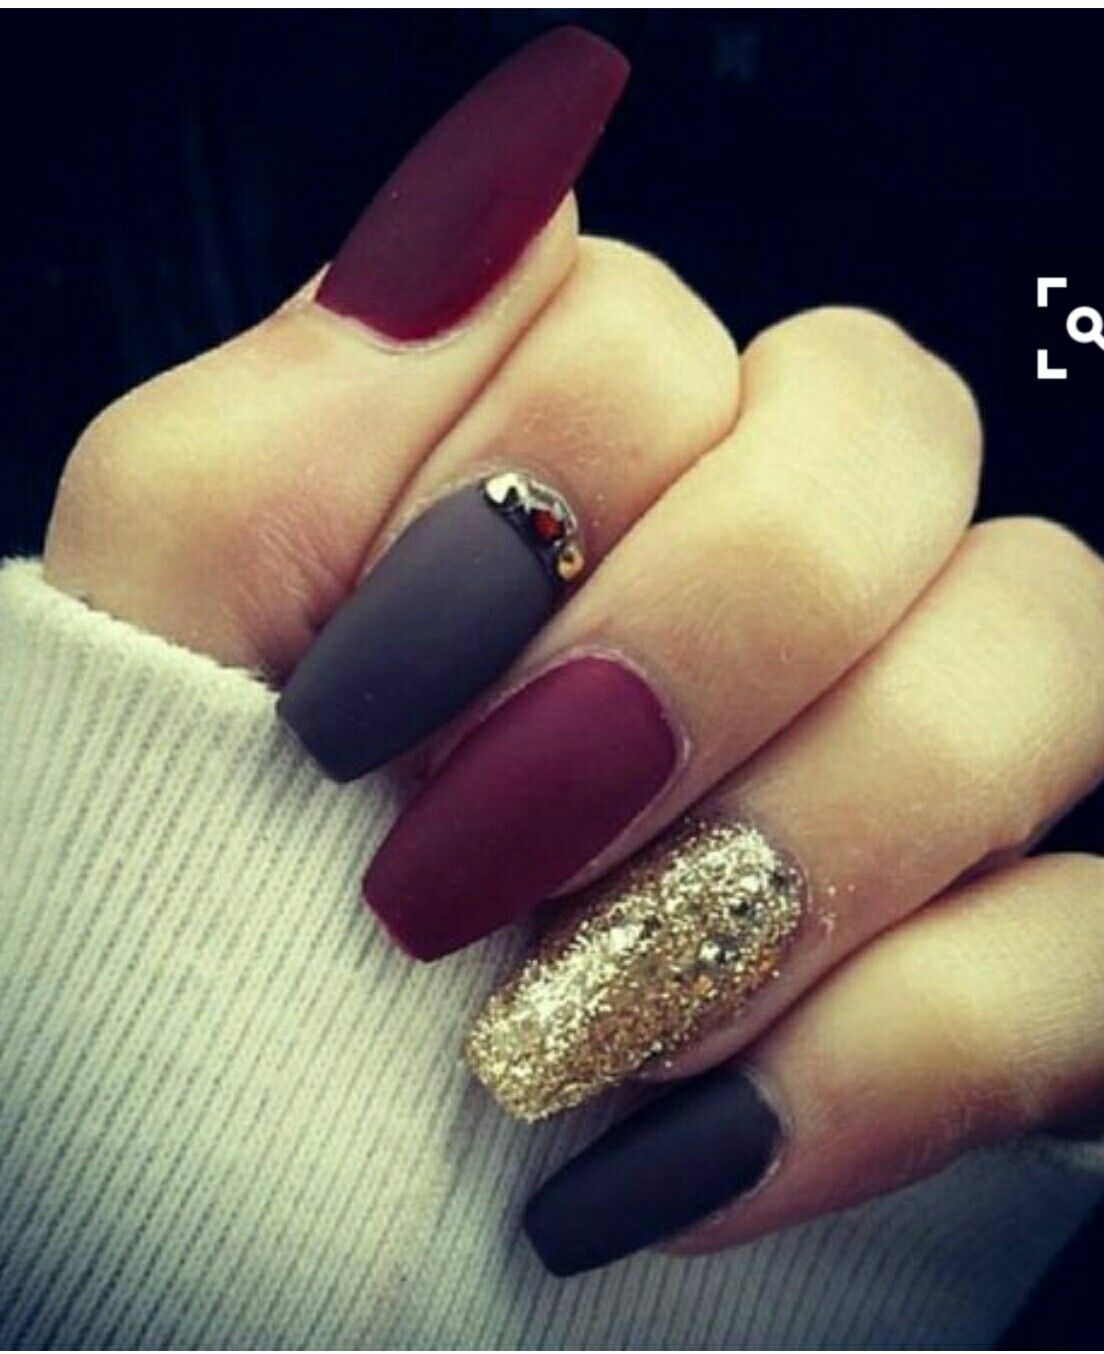 Pin by Nicole Fults on Nail Ideas | Pinterest